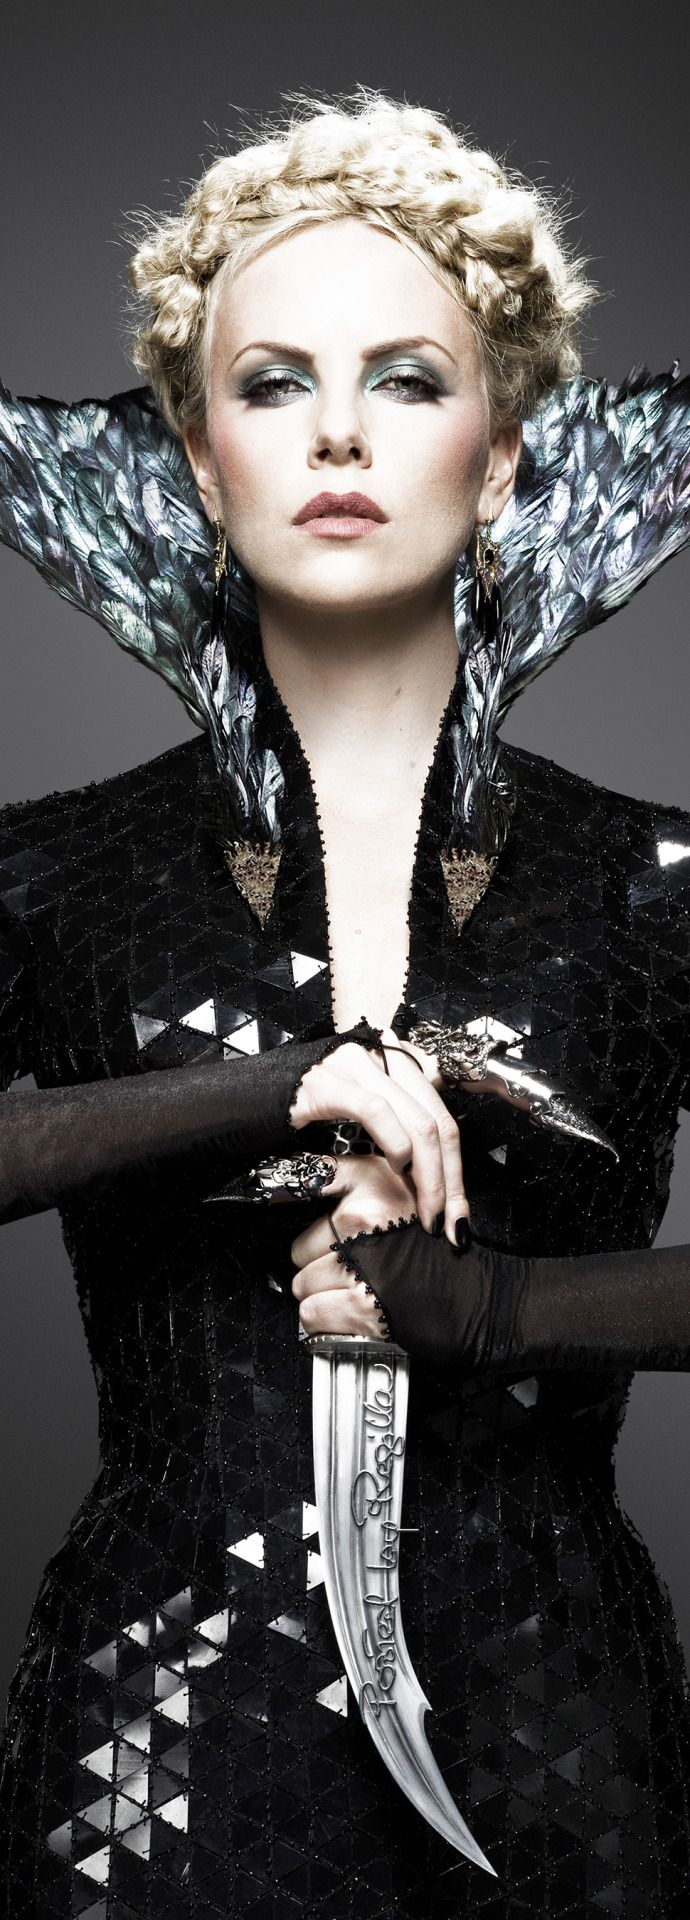 Regilla ⚜ Charlize Theron, Snow White and the Huntsman